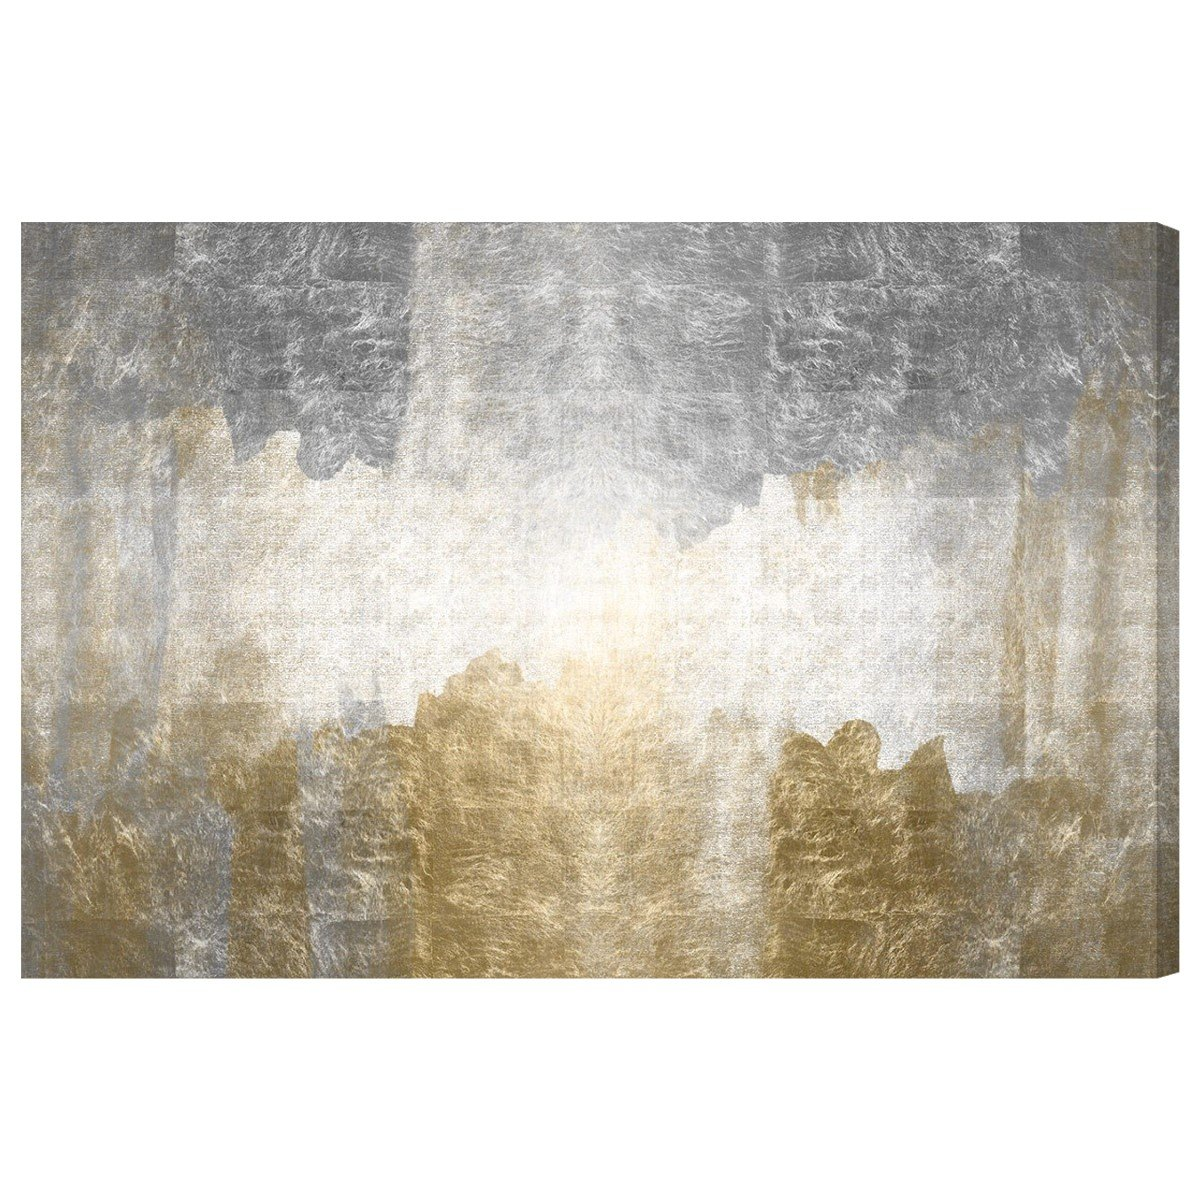 Amantes' Contemporary Canvas Wall Art Print for Home Decor and Office. The Fashion Wall Decor Collection by The Oliver Gal Artist Co. Gallery Wrapped and Ready to Hang. 60x40 inch by The Oliver Gal Artist Co.